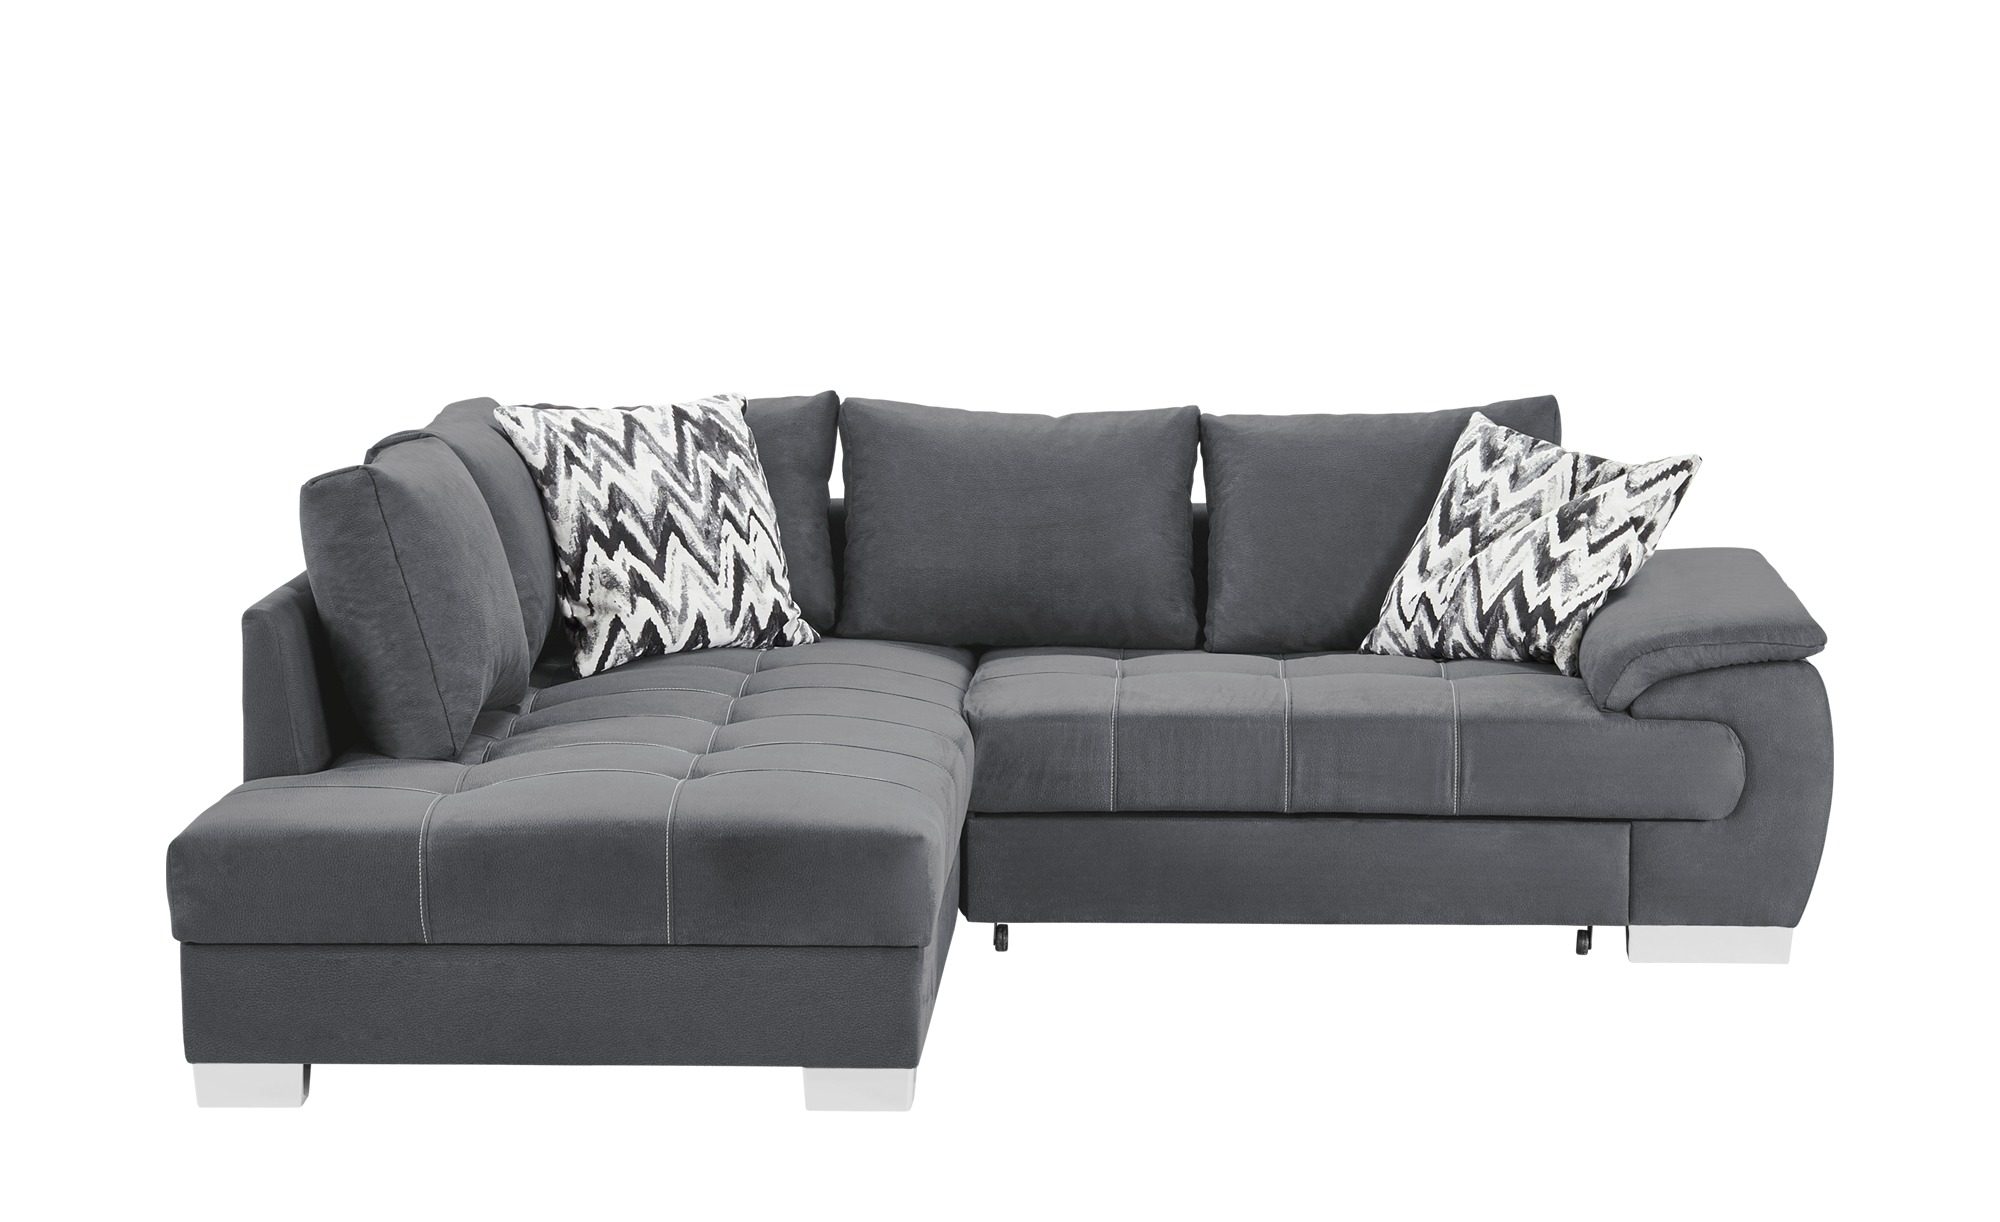 ecksofa brenda breite h he 83 cm grau online kaufen bei woonio. Black Bedroom Furniture Sets. Home Design Ideas